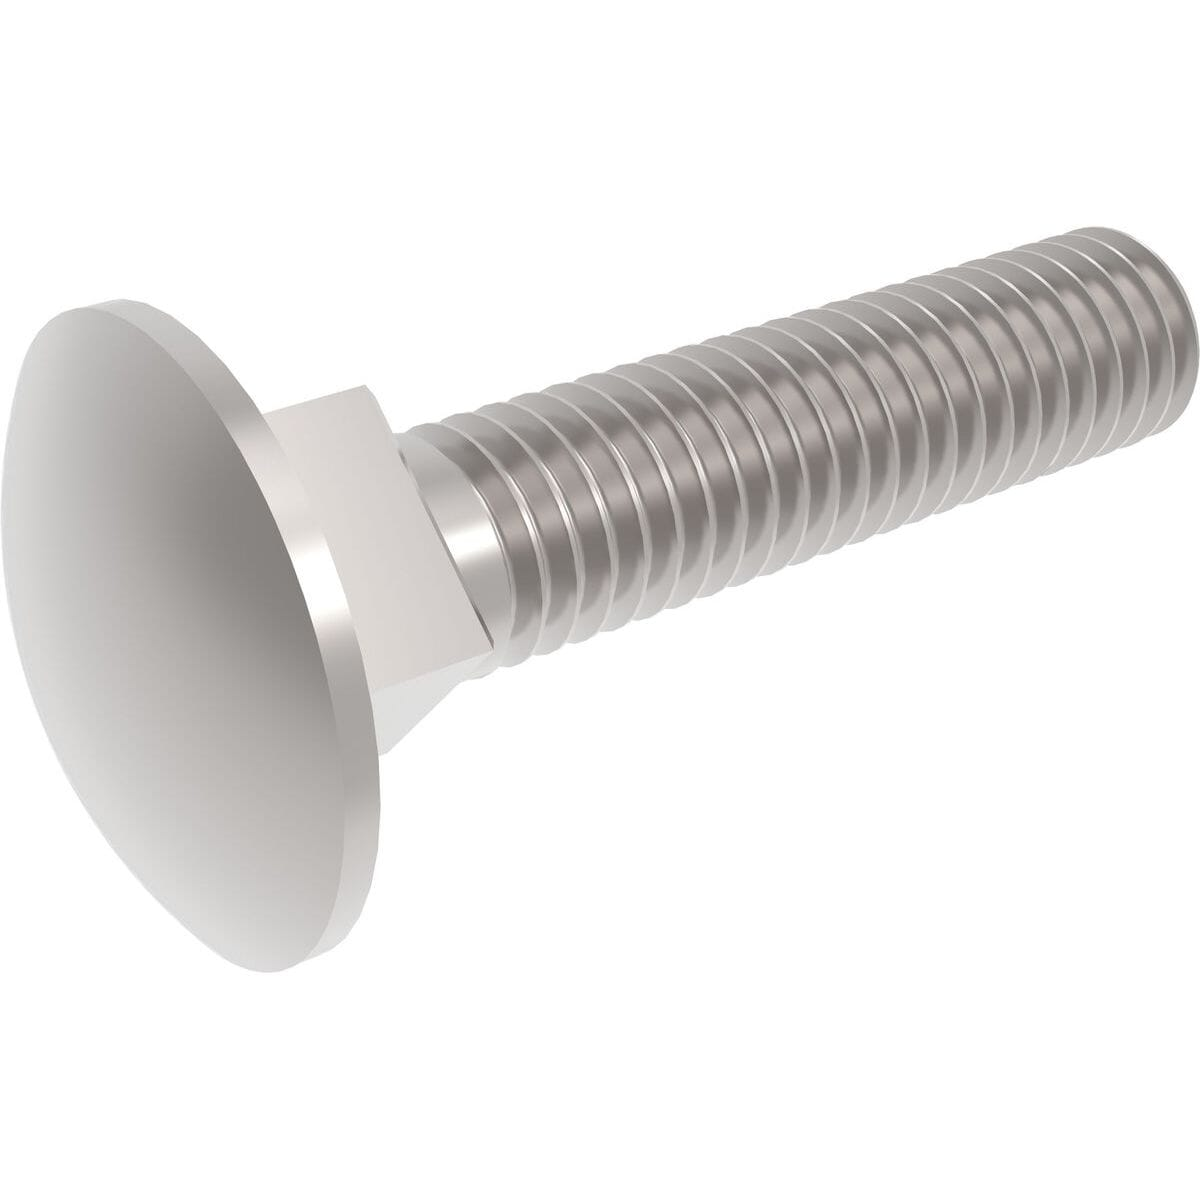 M8 x 80mm Full Thread Carriage Bolts (DIN 603) - Marine Stainless Steel (A4)